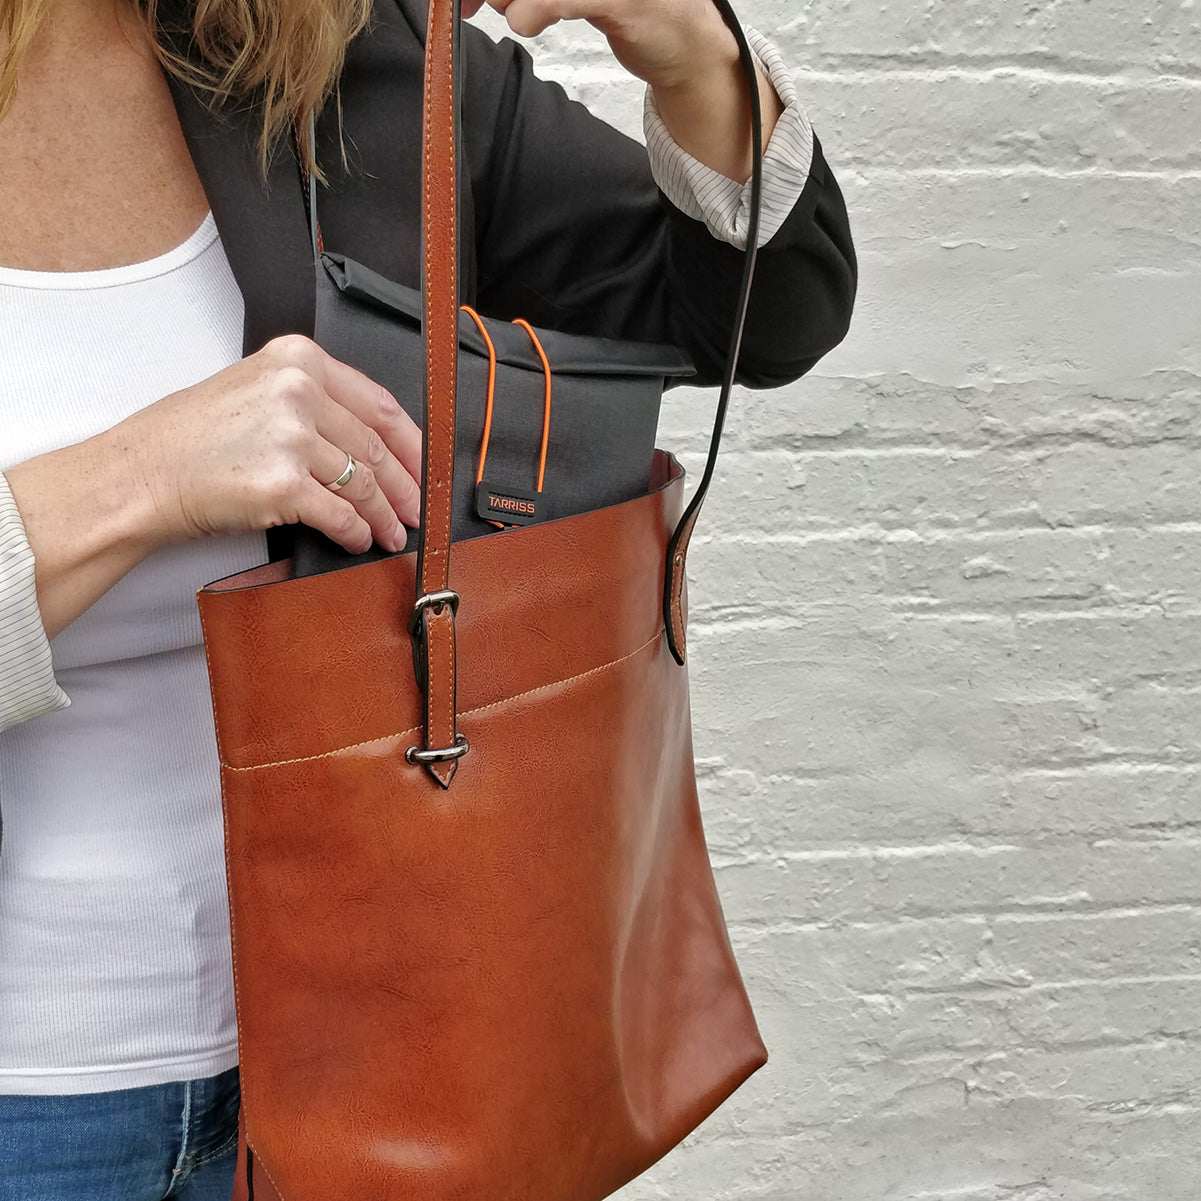 GoDark bags are privacy on the go